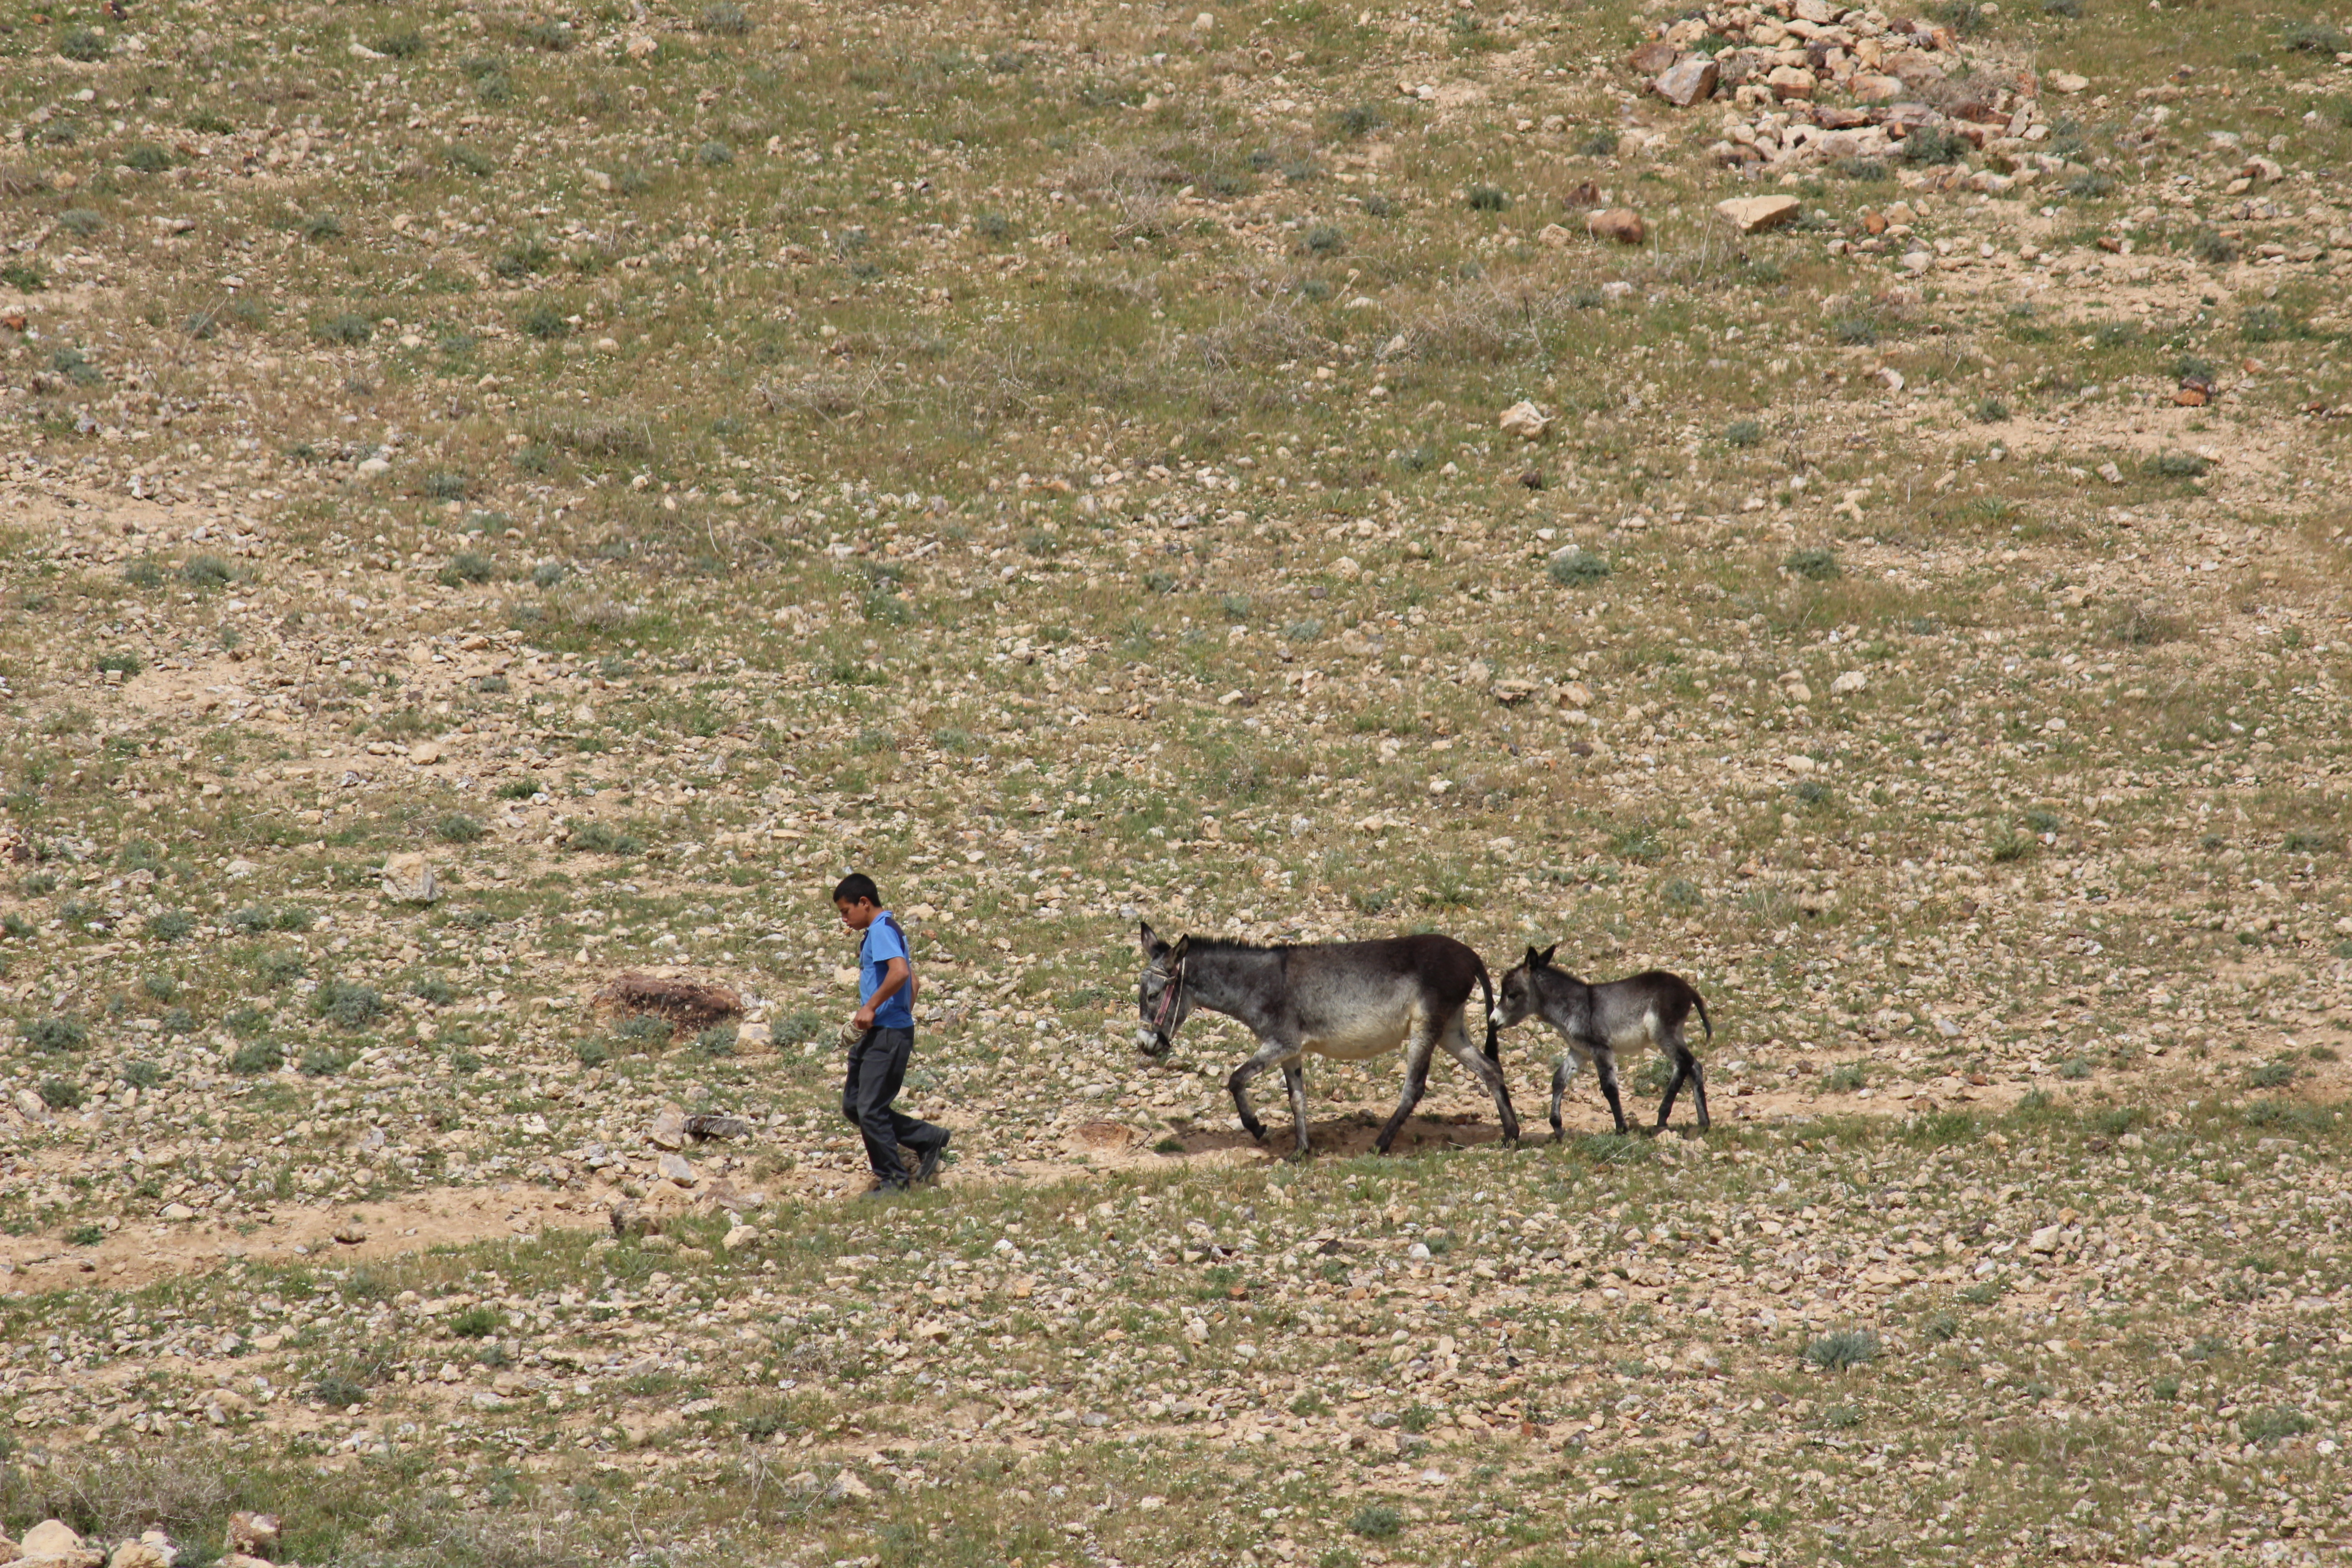 Bedouin child with donkeys